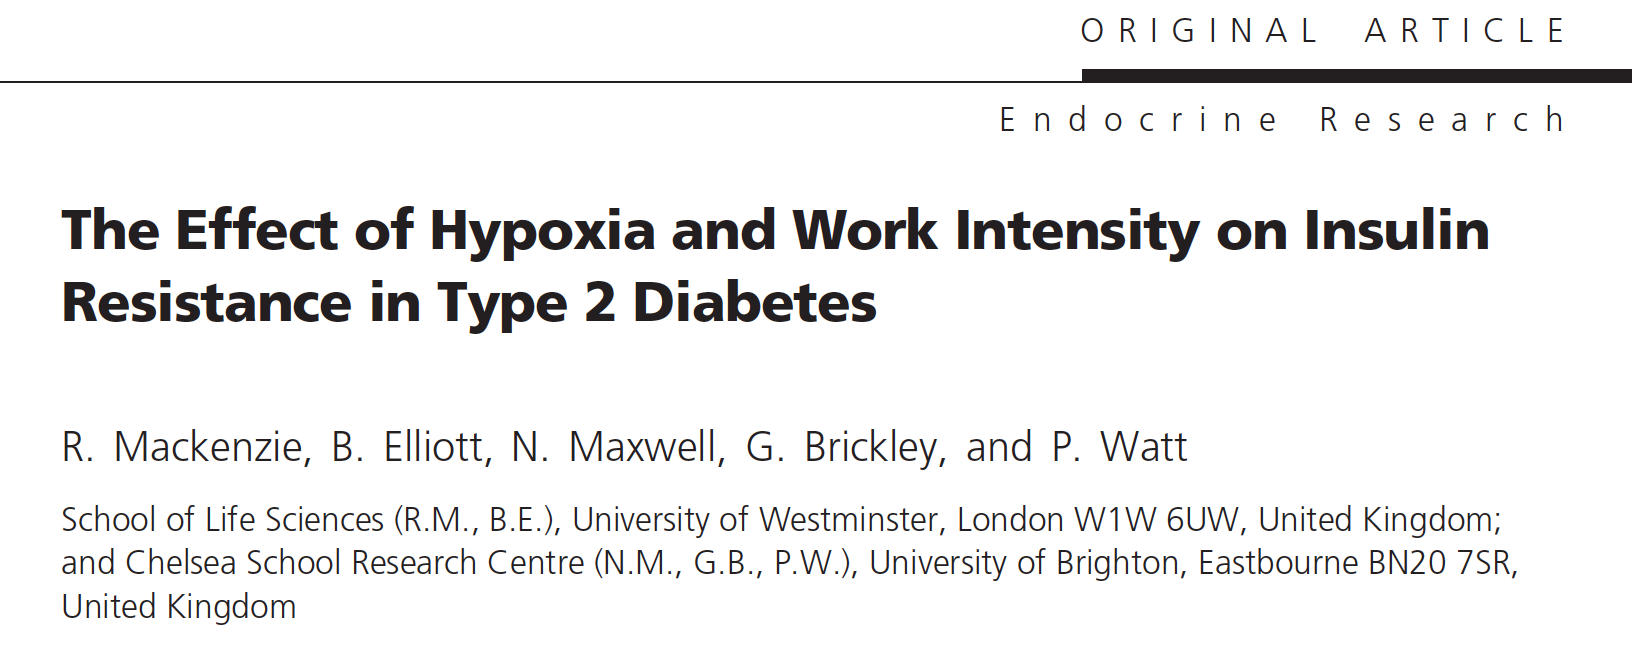 - Moderate exercise in hypoxia improves insulin sensitivity in type 2 diabetics